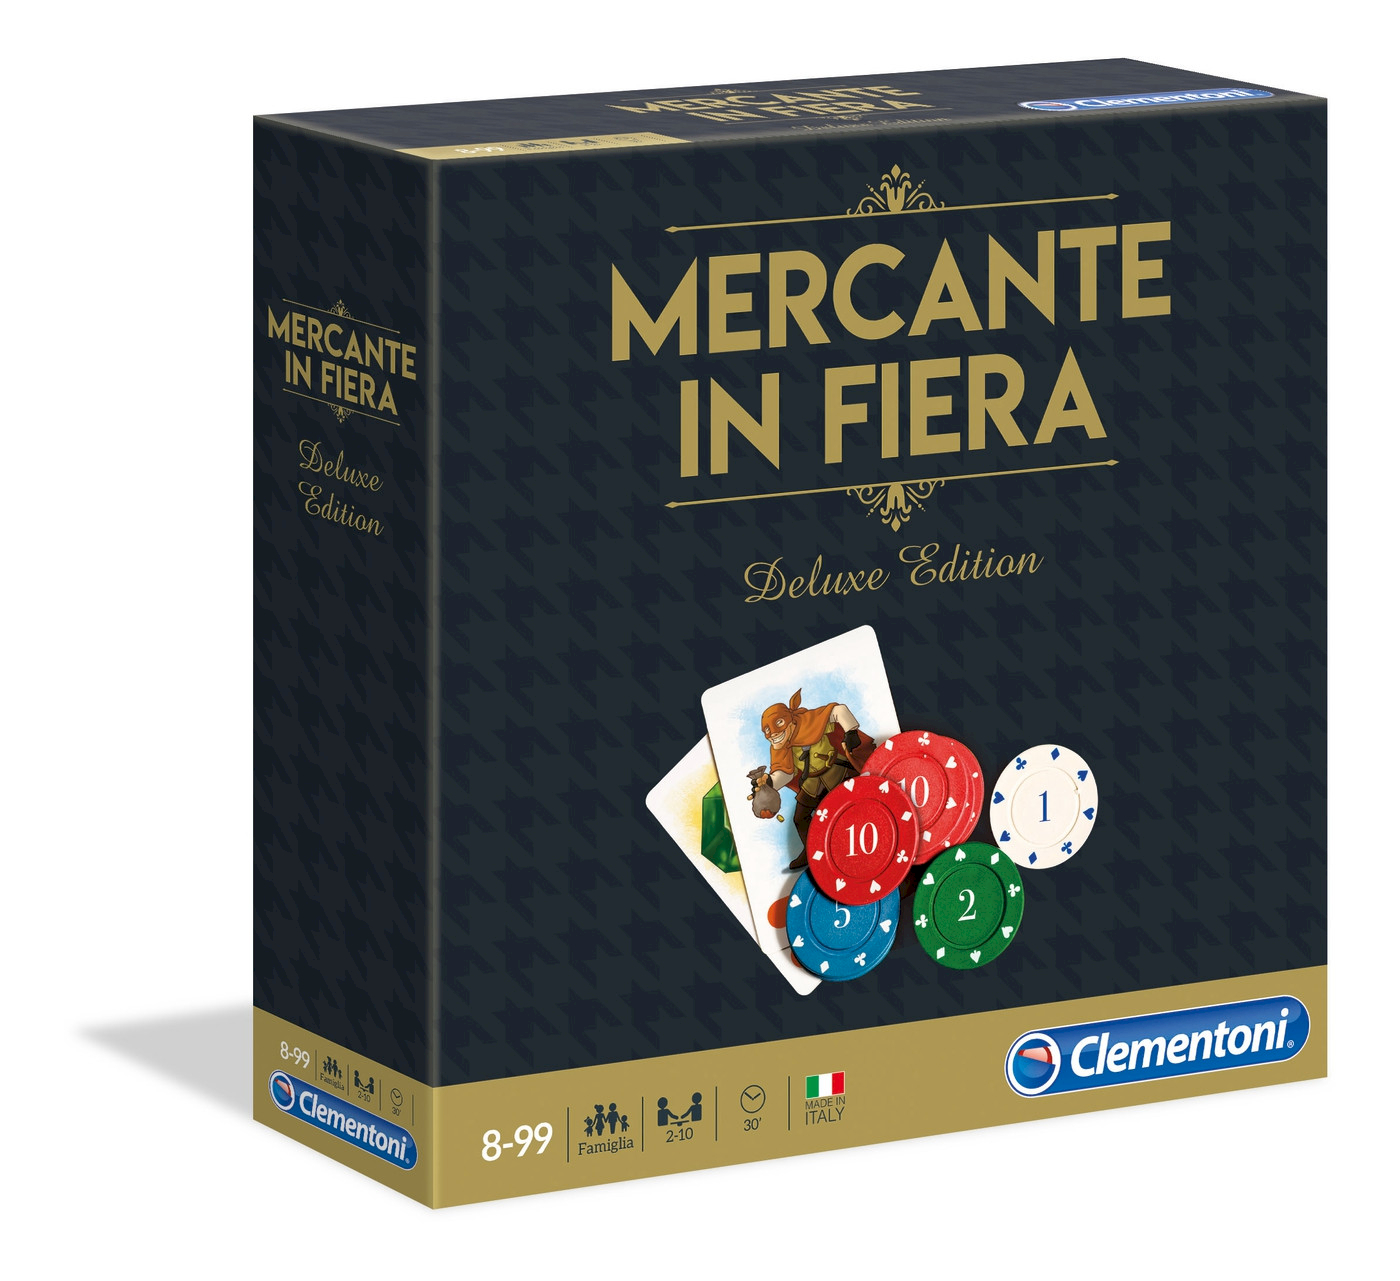 Mercante in Fiera - Deluxe Edition